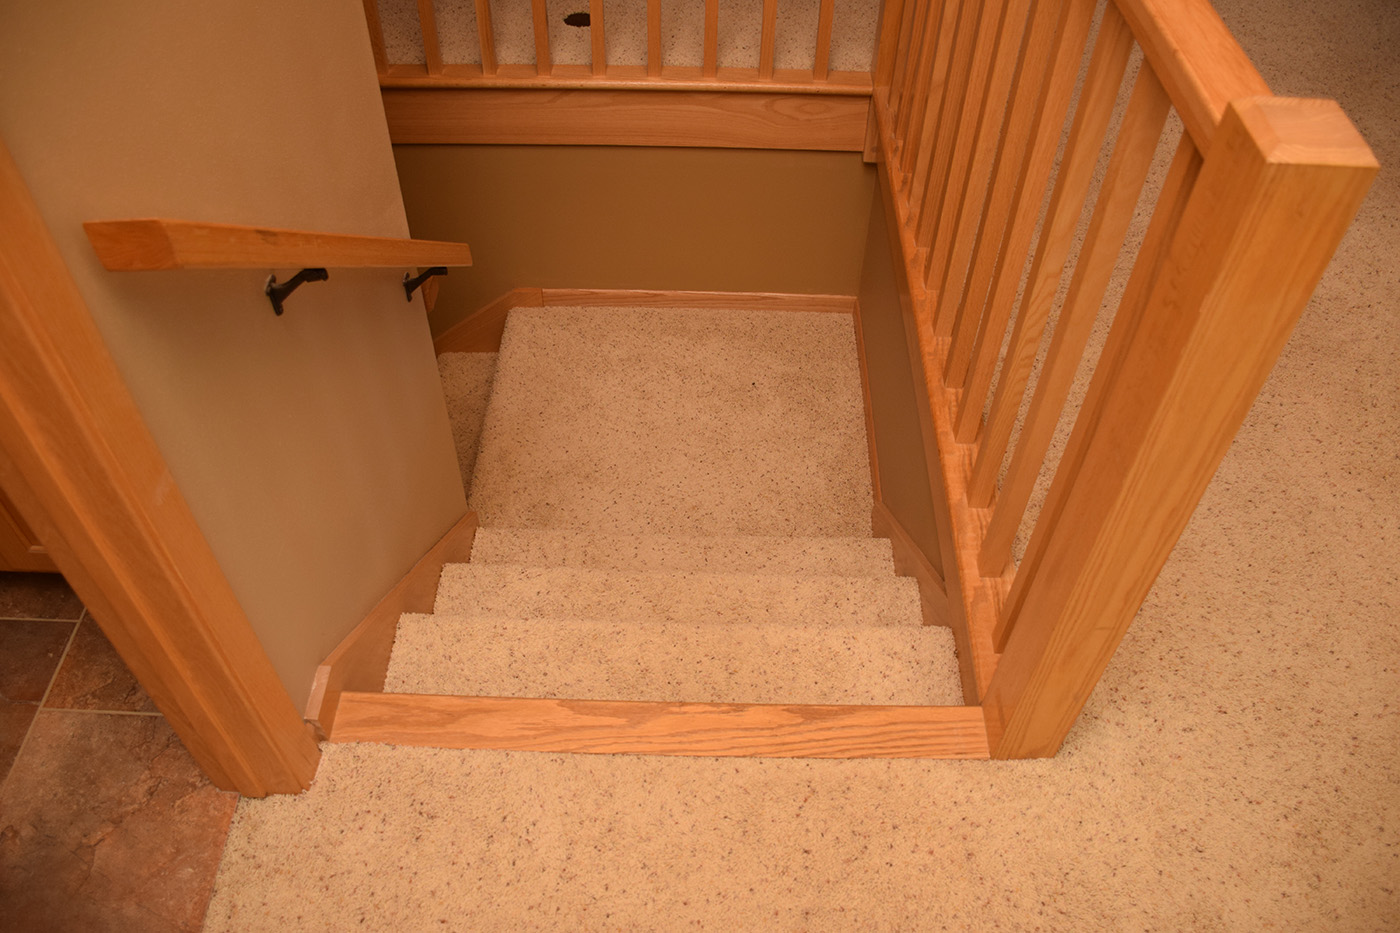 Before laying Hardwood Flooring in stair landing